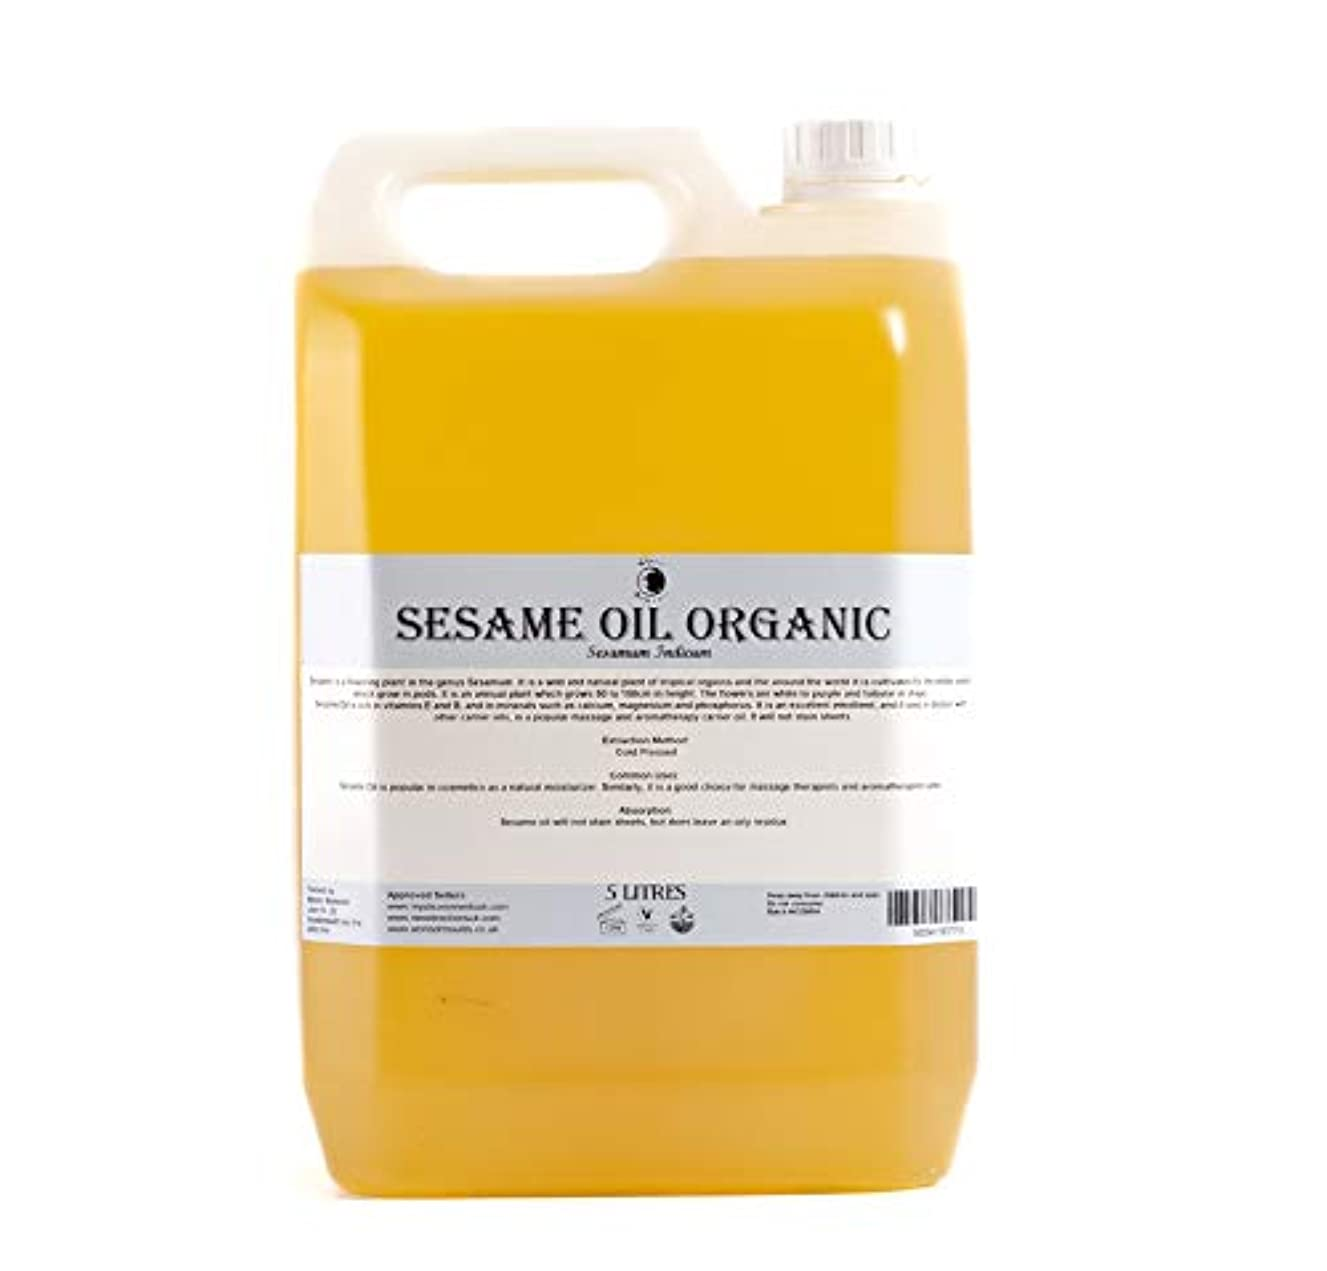 バルク虫バッジMystic Moments | Sesame Organic Carrier Oil - 5 Litres - 100% Pure